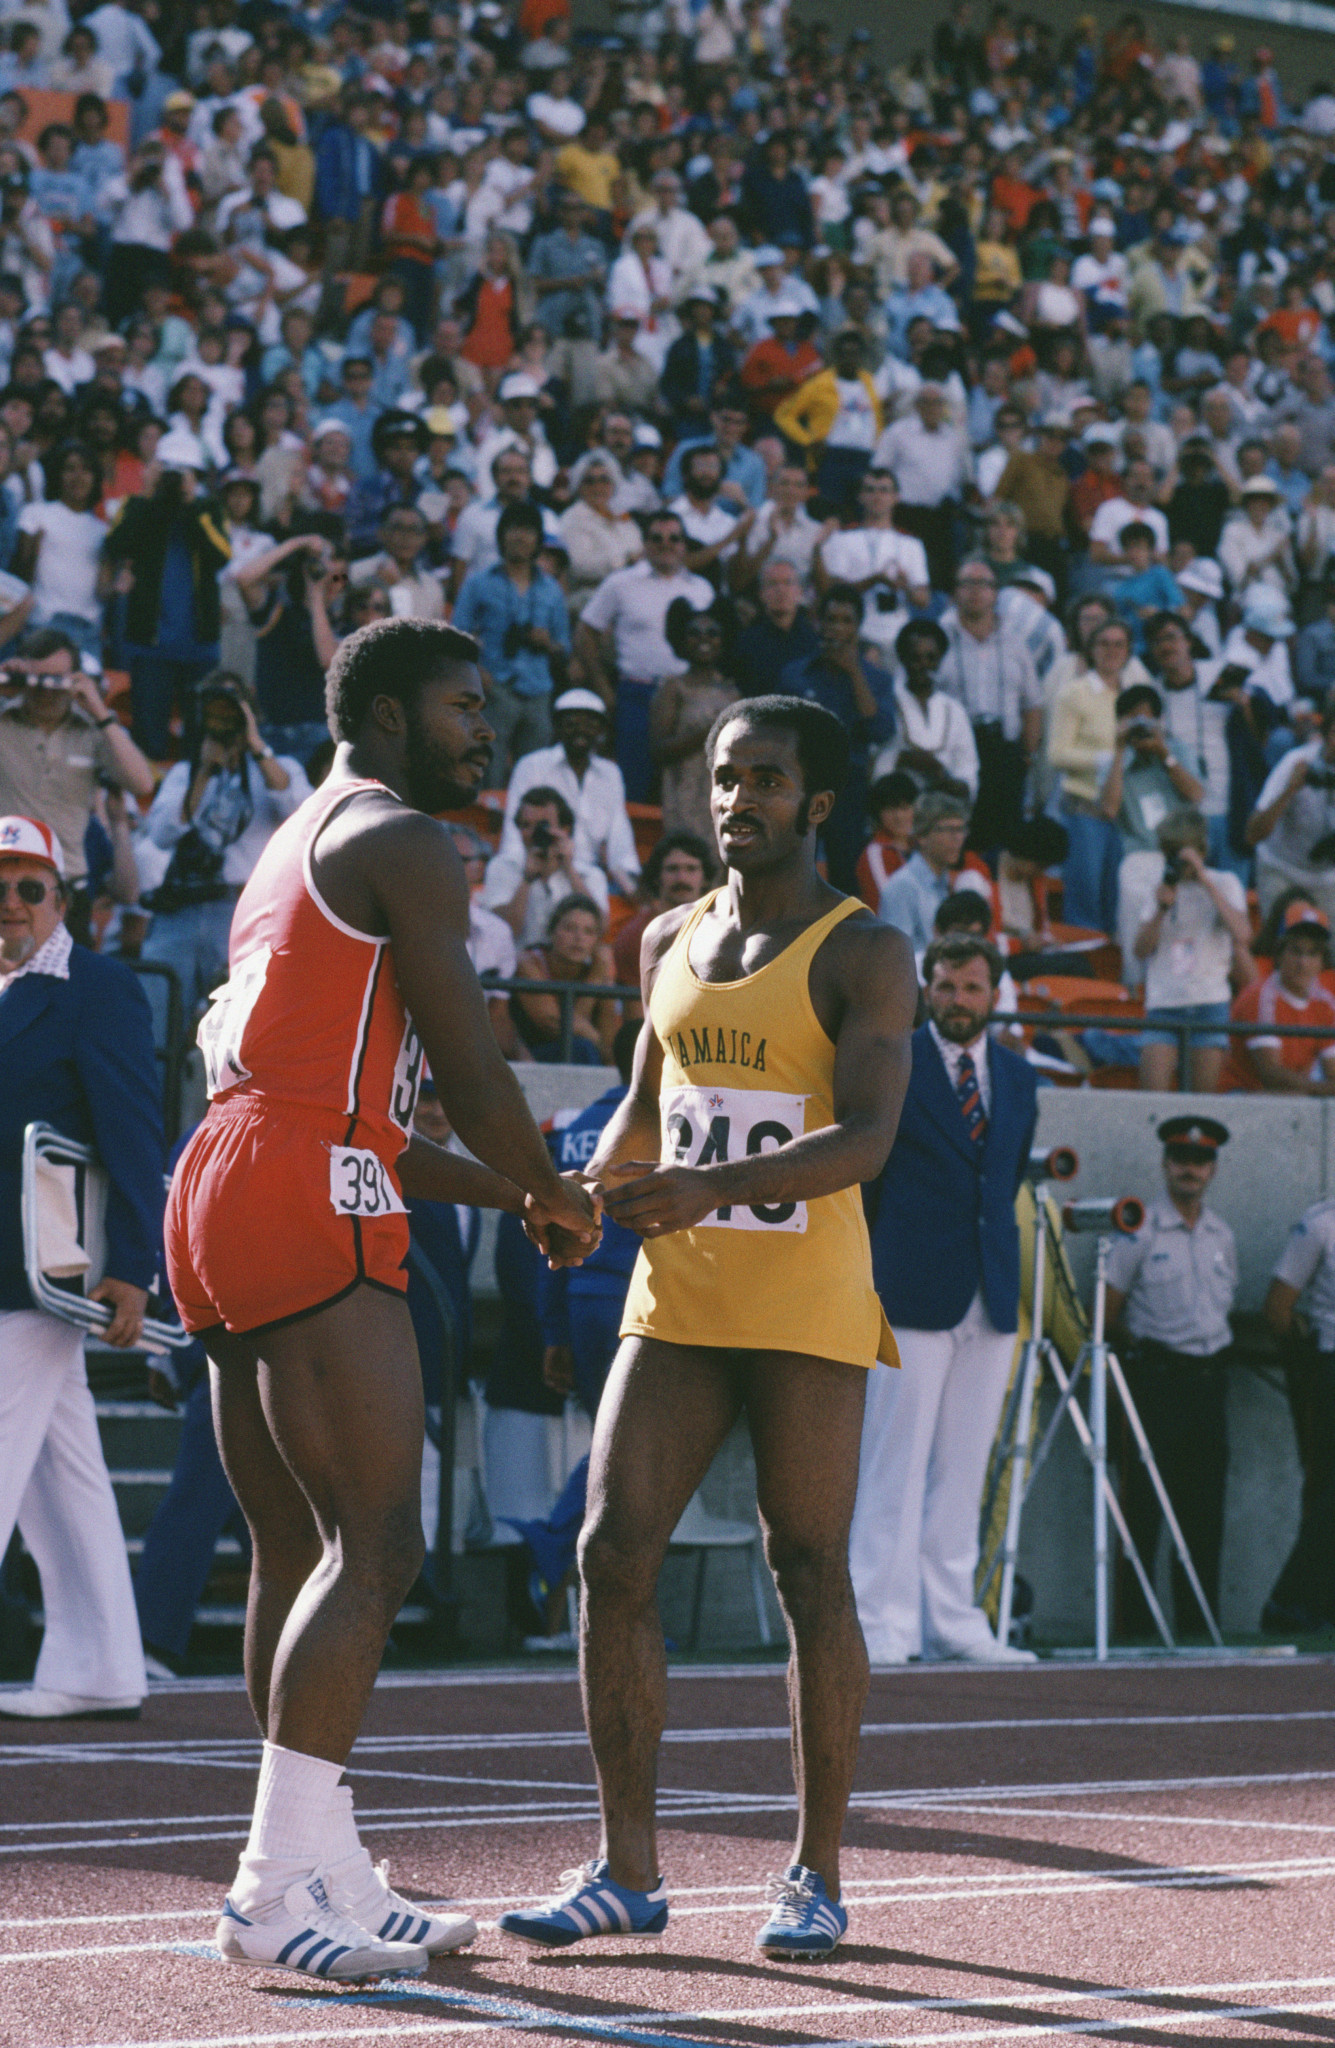 Bronze medal winner Hasely Crawford of Trinidad and Tobago congratulates Jamaican athlete Don Quarrie, right, on winning the gold in the 100 Metres at the Commonwealth Games in Edmonton, Canada, in August 1978. Allan Wells, of Scotland, finished second ©Getty Images